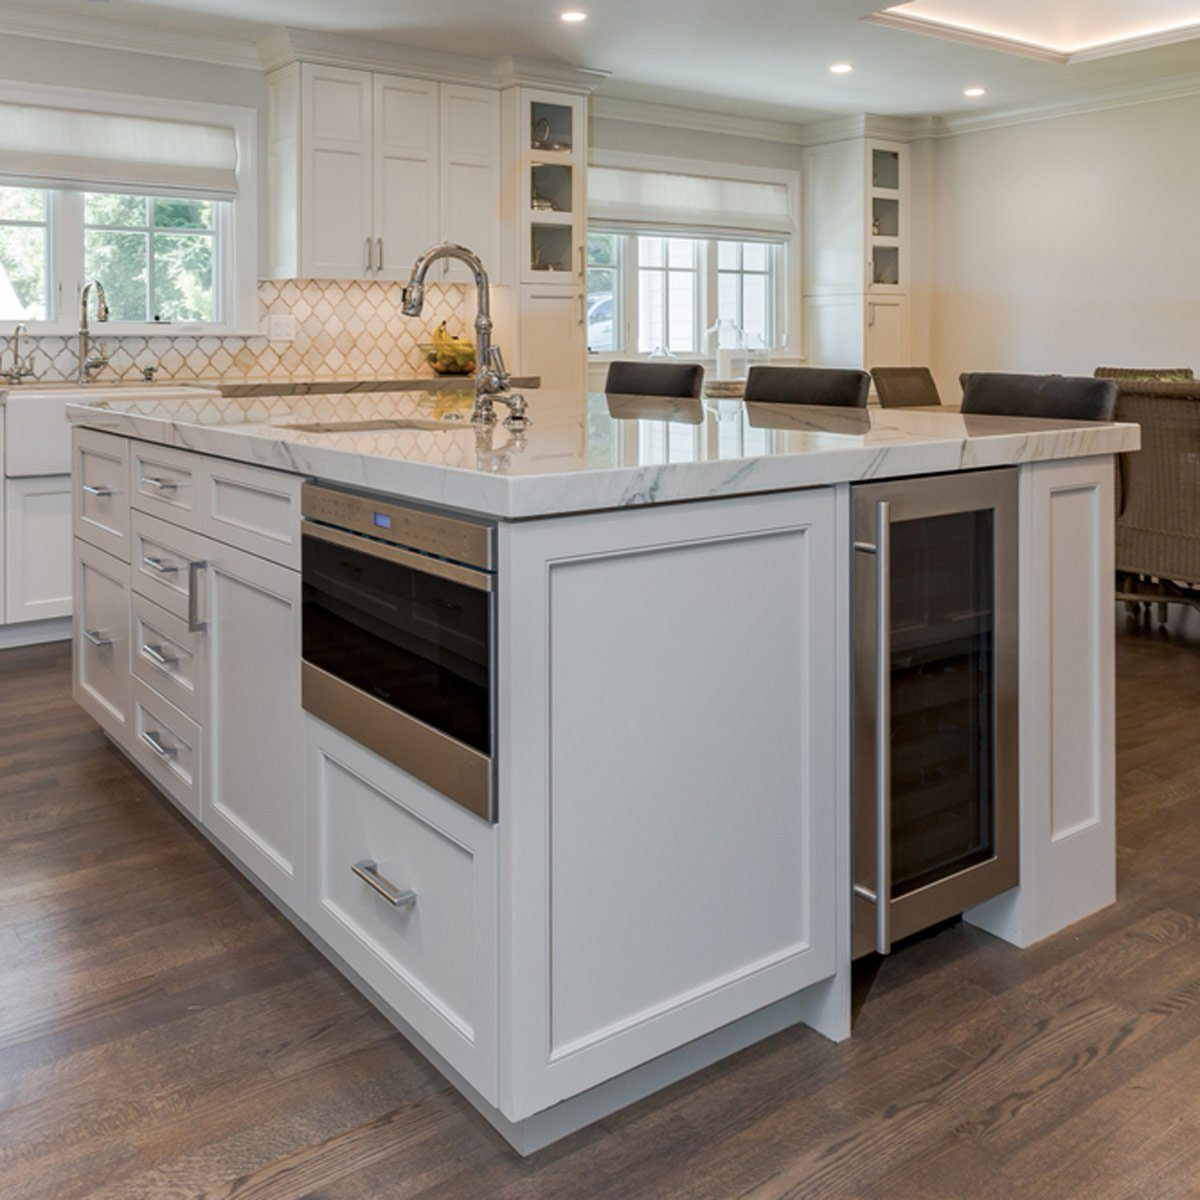 Integrate Appliances into Your Kitchen Island